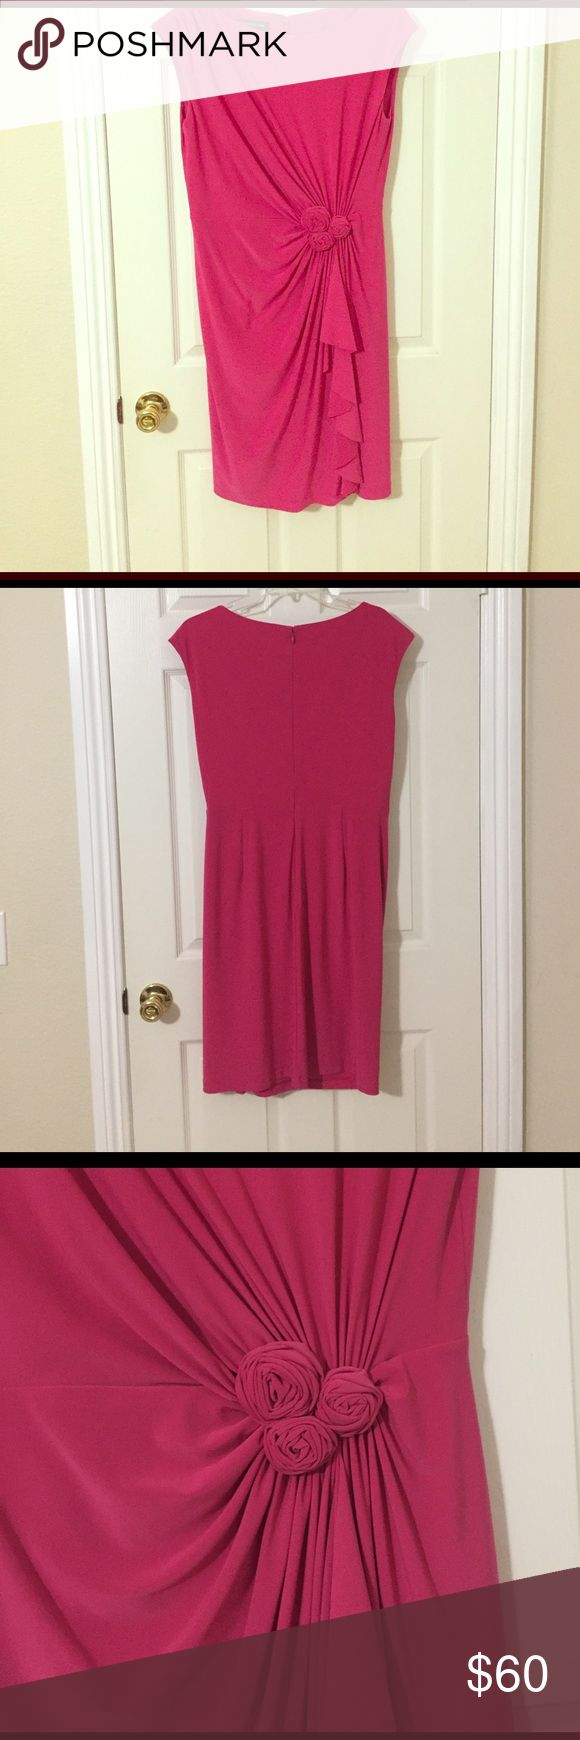 Jones New York hot pink dress Gorgeous dress for those events coming up in the spring and summer. This Jones New York dress features a cap sleeve and floral design. The material is soft and fully lined. It is very flattering and hides the midsection well. Zip closure on the back. Jones New York Dresses